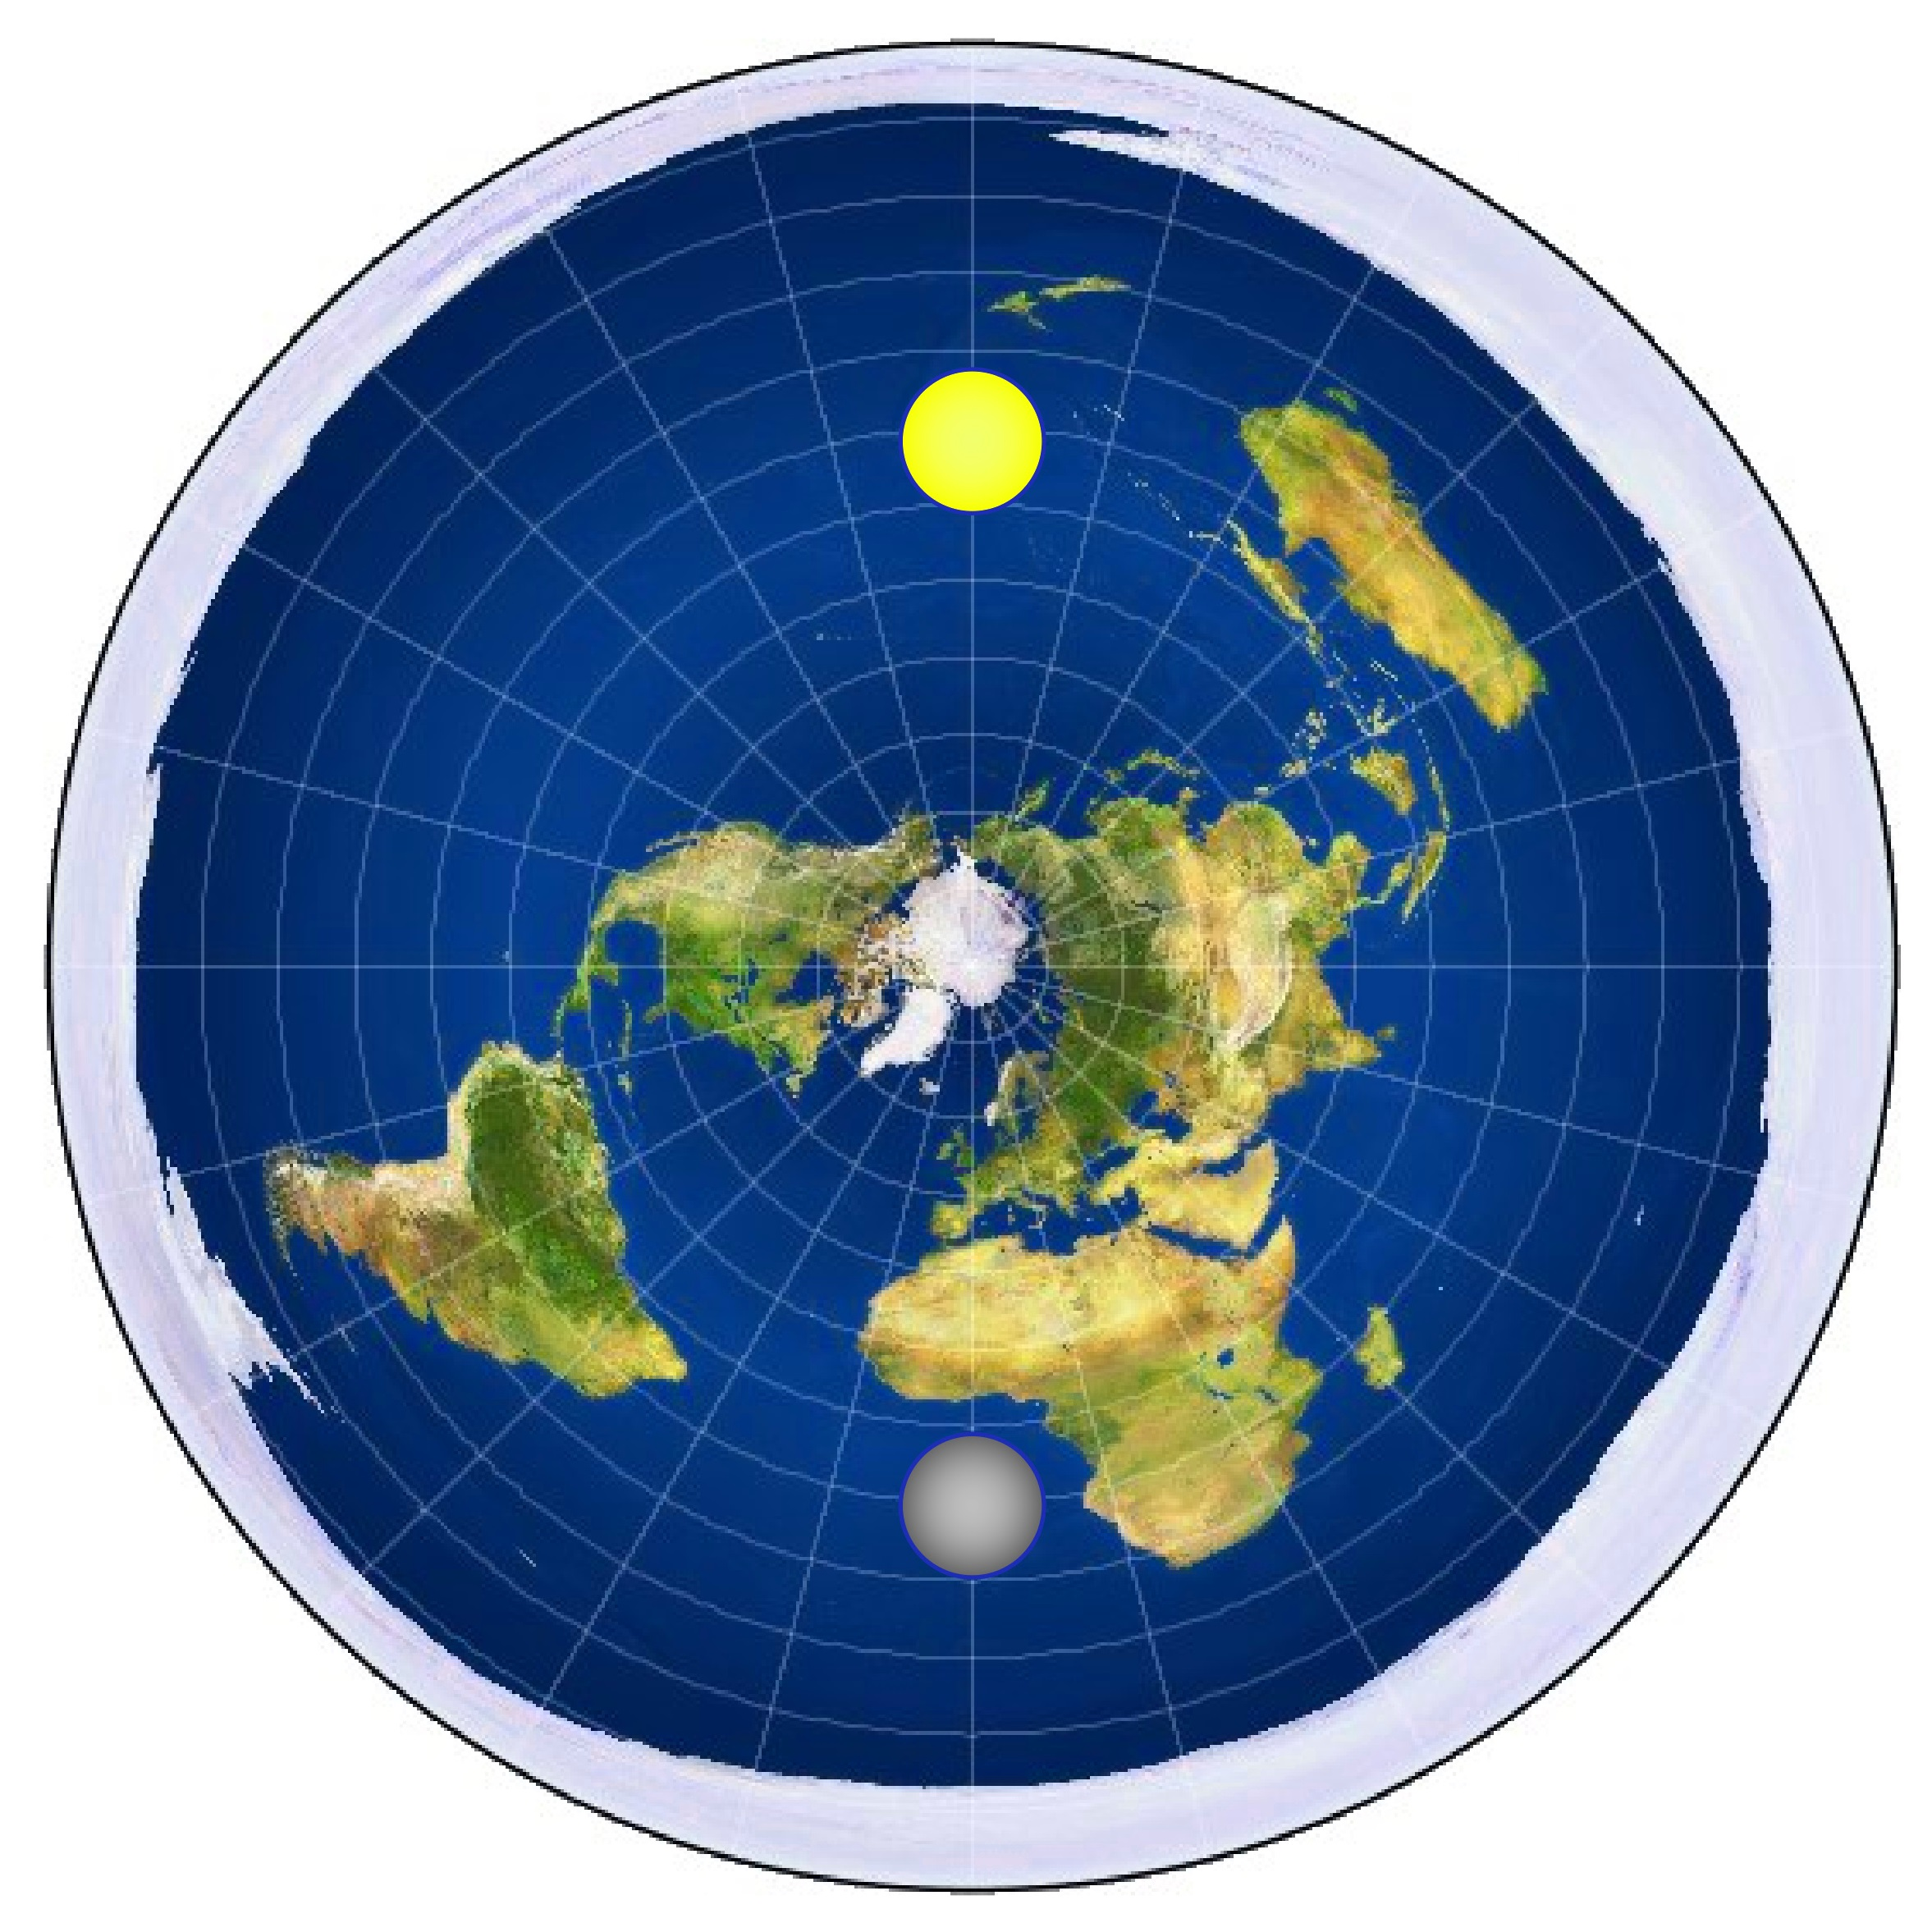 This Is A Typical Flat Earth Map, With The Sun And Moon Circling Overhead.